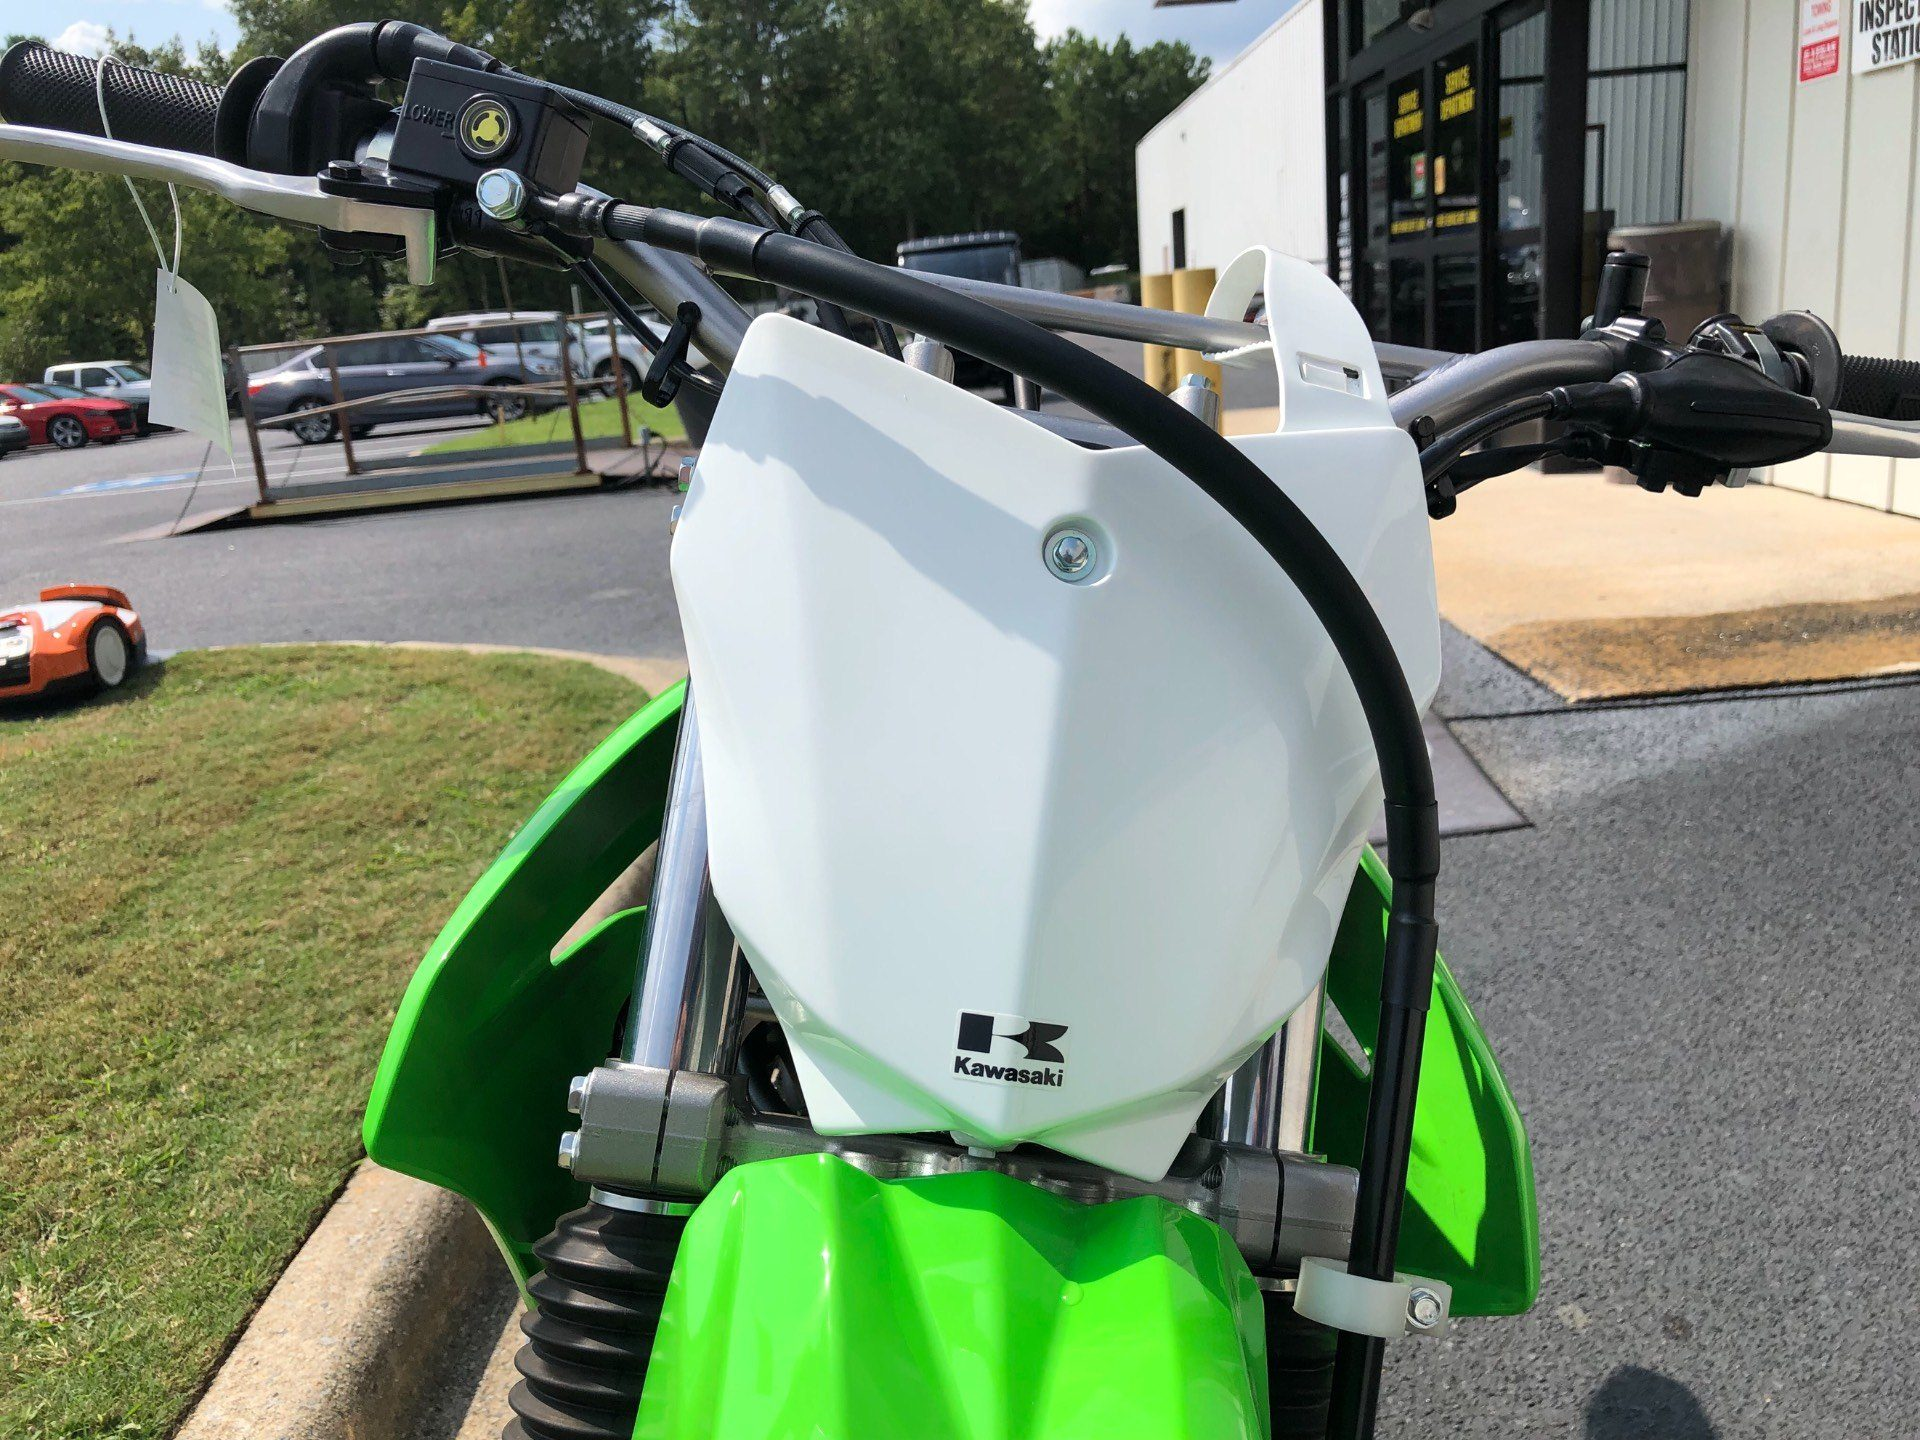 2020 Kawasaki KLX 230R in Greenville, North Carolina - Photo 13